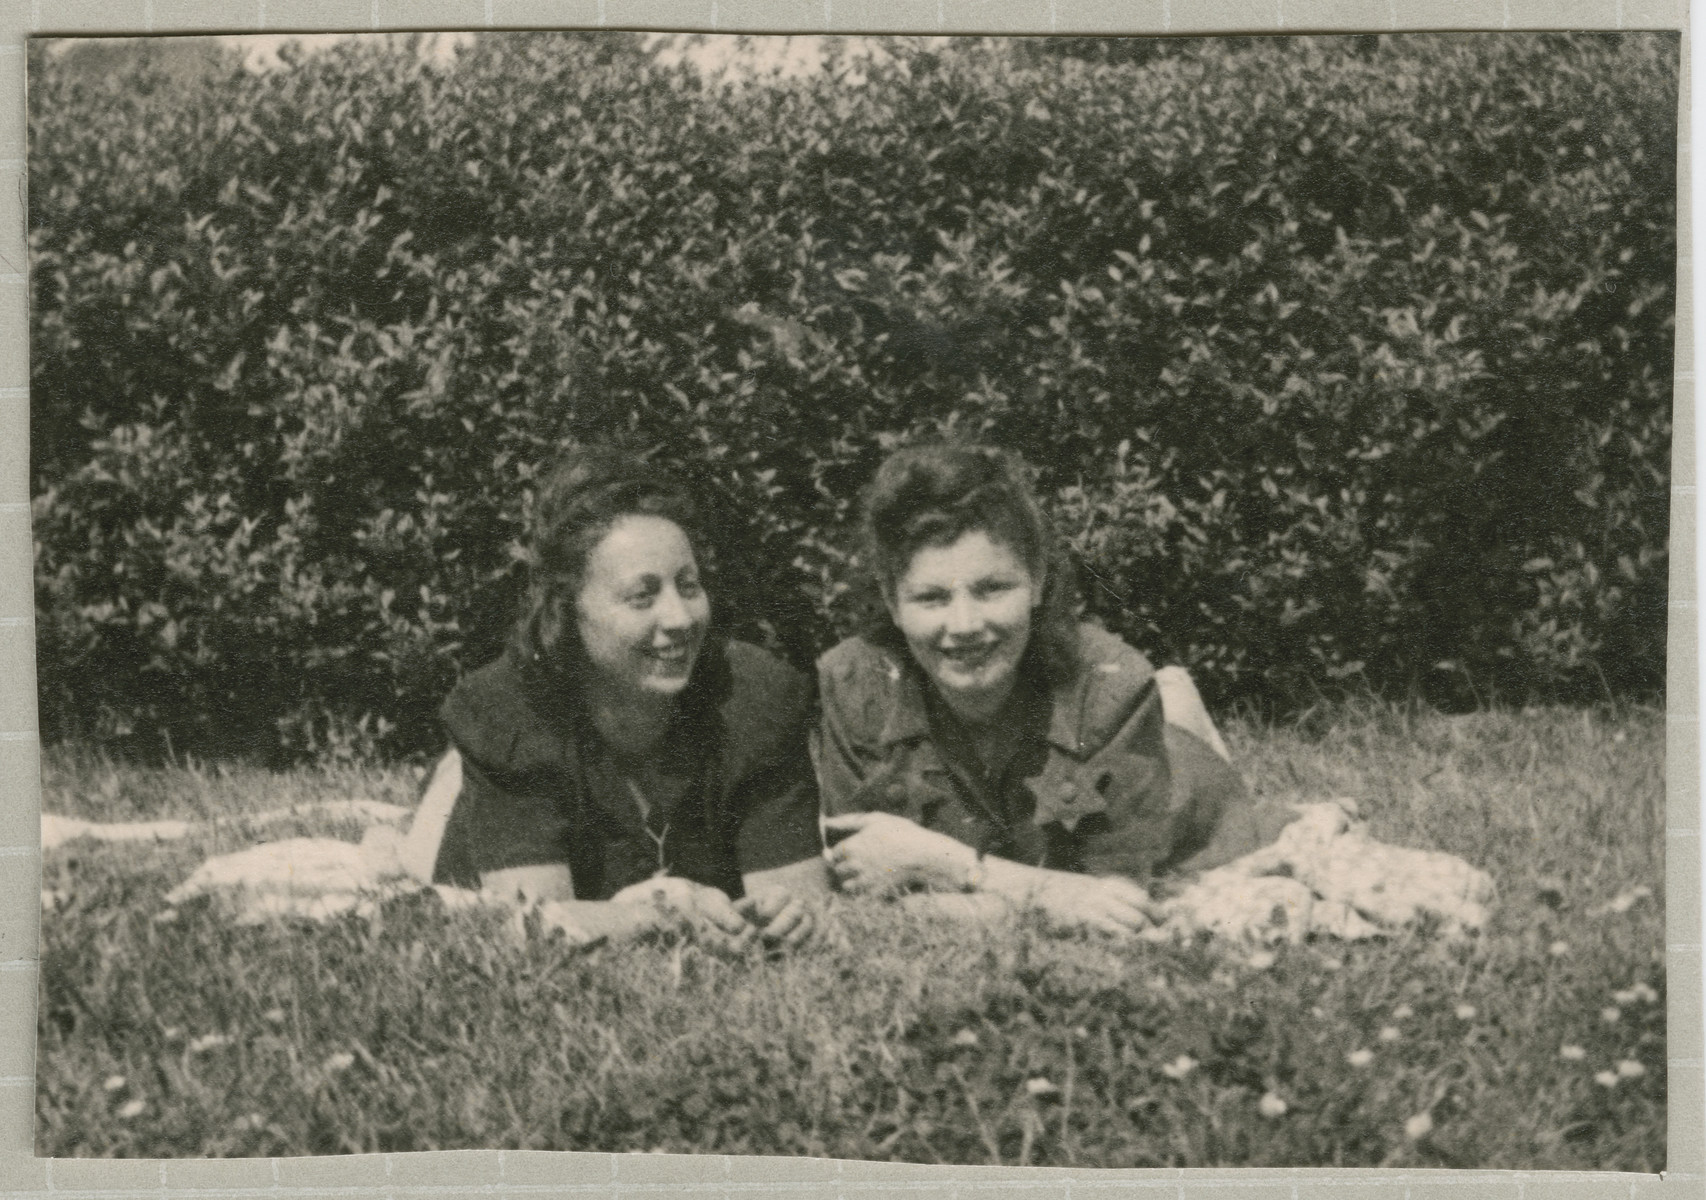 Hanka Bratman Fisch and Hanna Bratman lie on the lawn of the Lampertheim displaced persons camp.